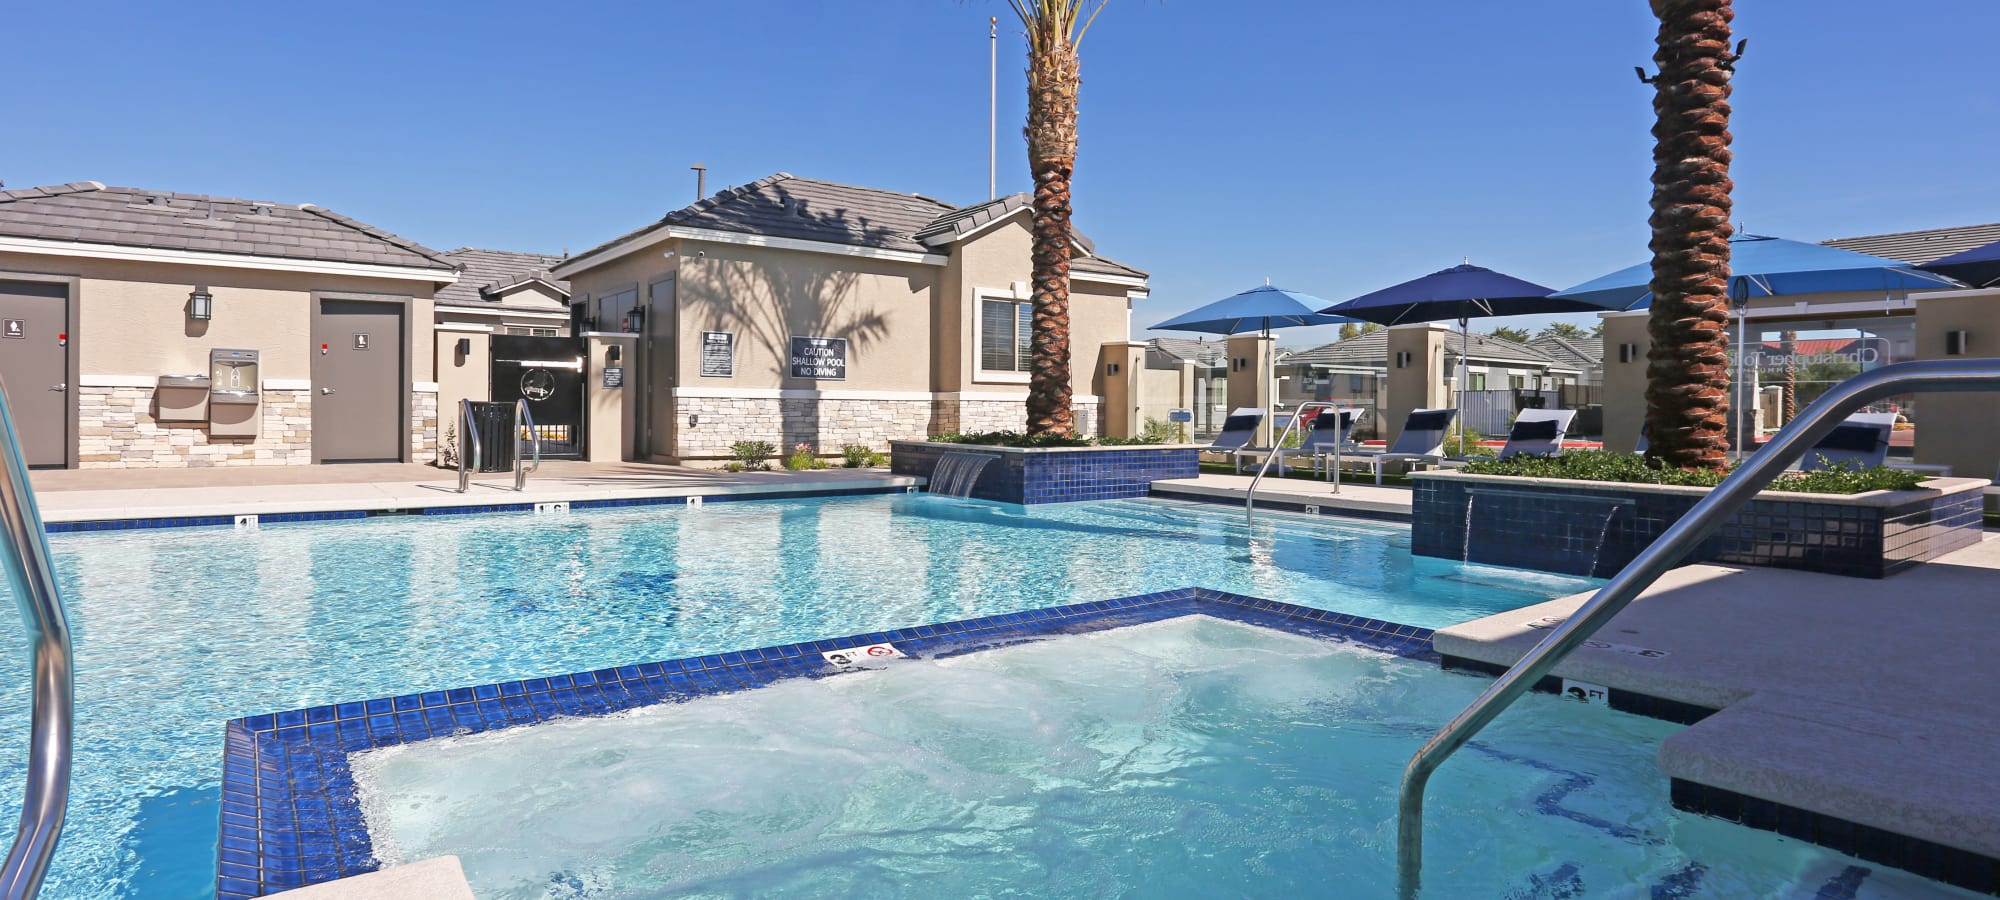 Pool and adjacent spa at Christopher Todd Communities On Camelback in Litchfield Park, Arizona